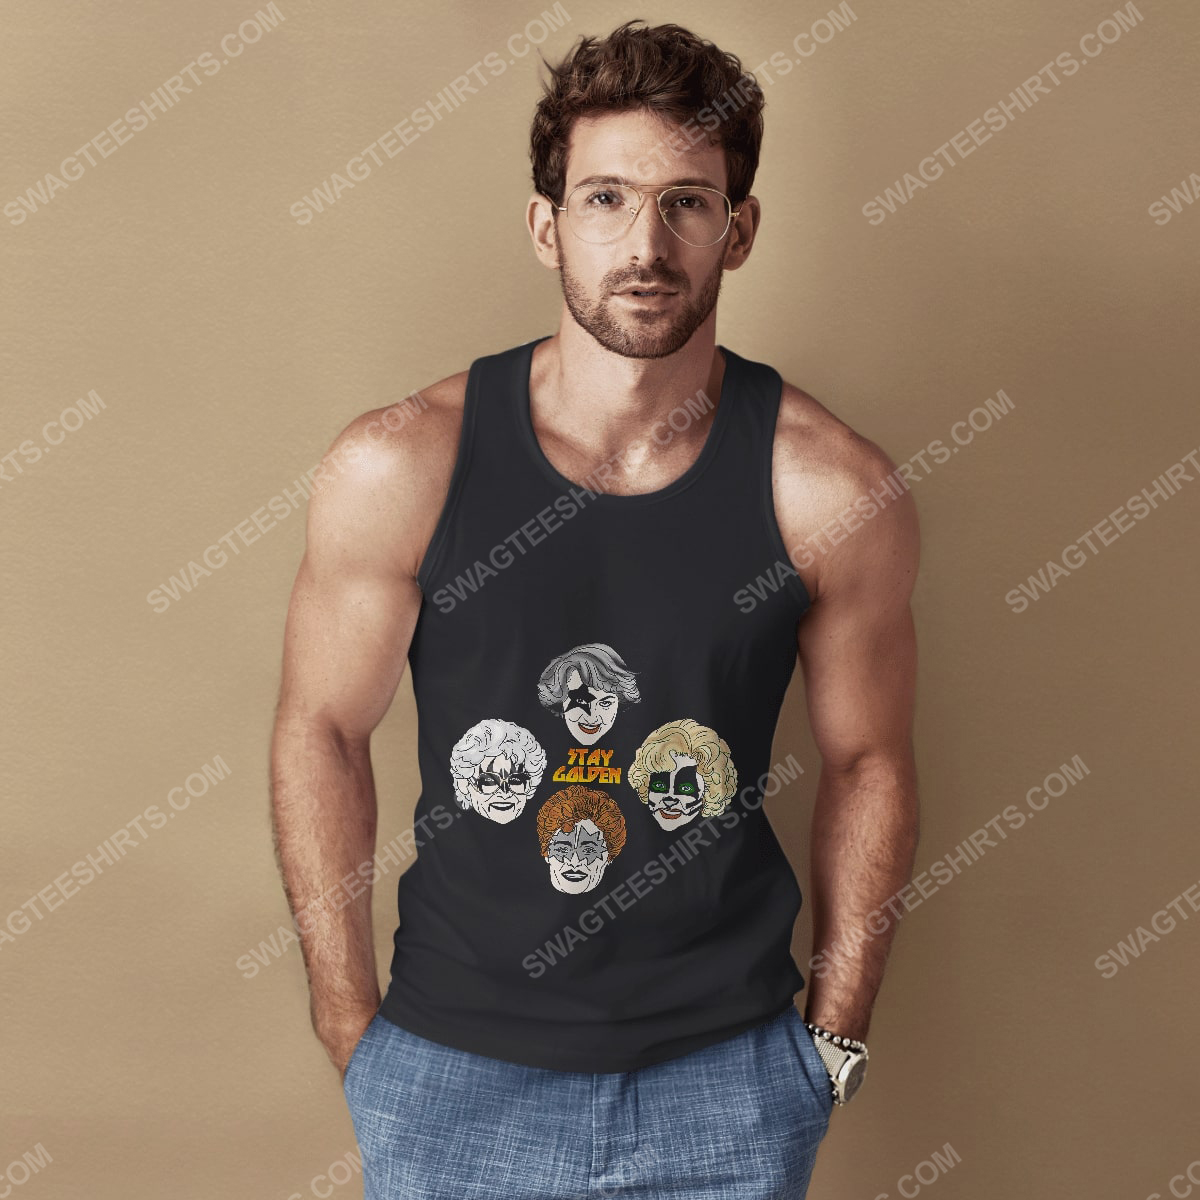 Kiss and the golden girls stay golden tank top 1(1)